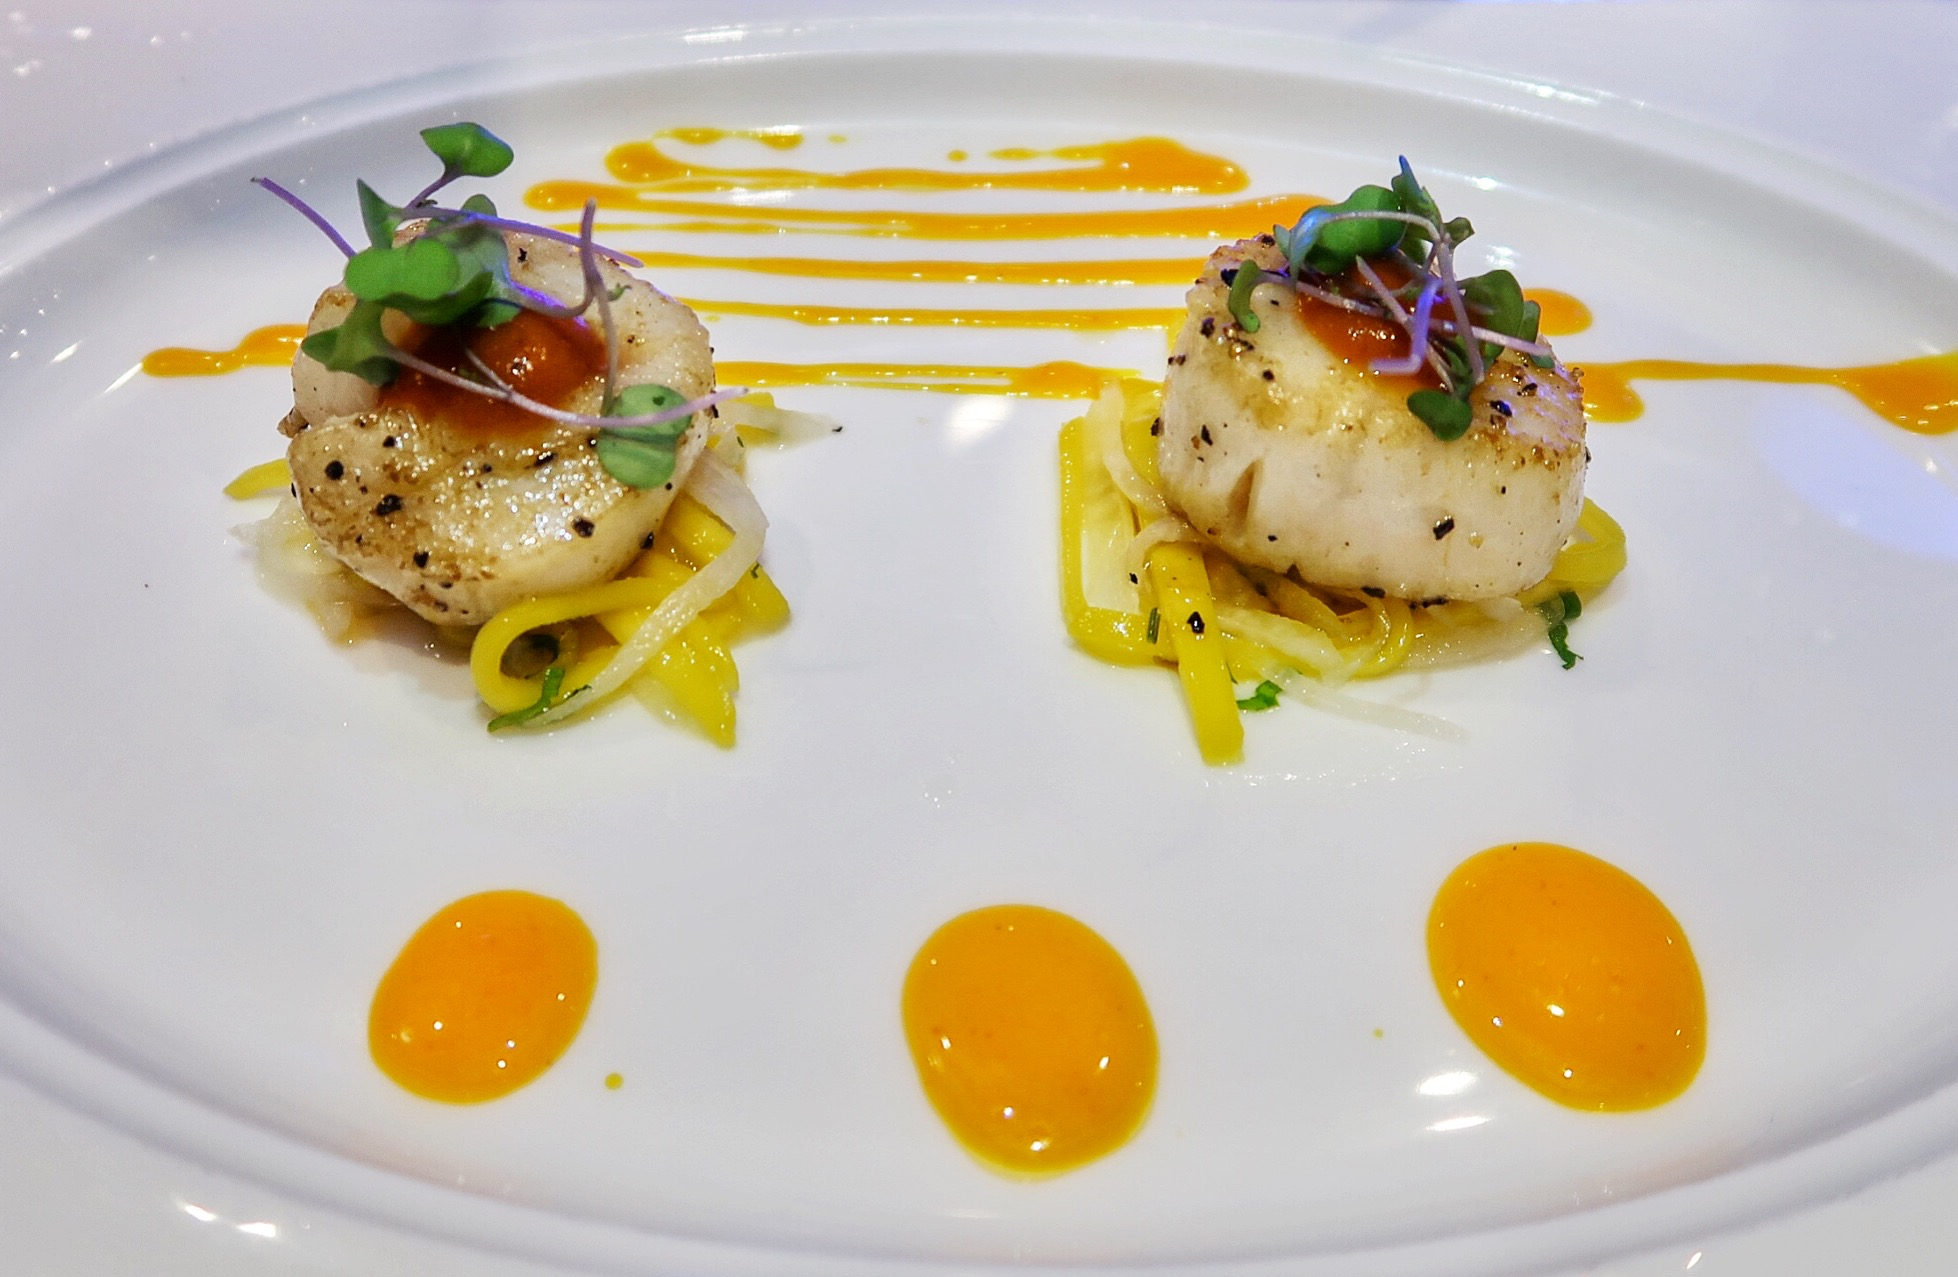 Clay oven roasted diver sea scallops with a grilled mango and pickled jicama slaw, tomato chutney and chili mandarin drizzle.